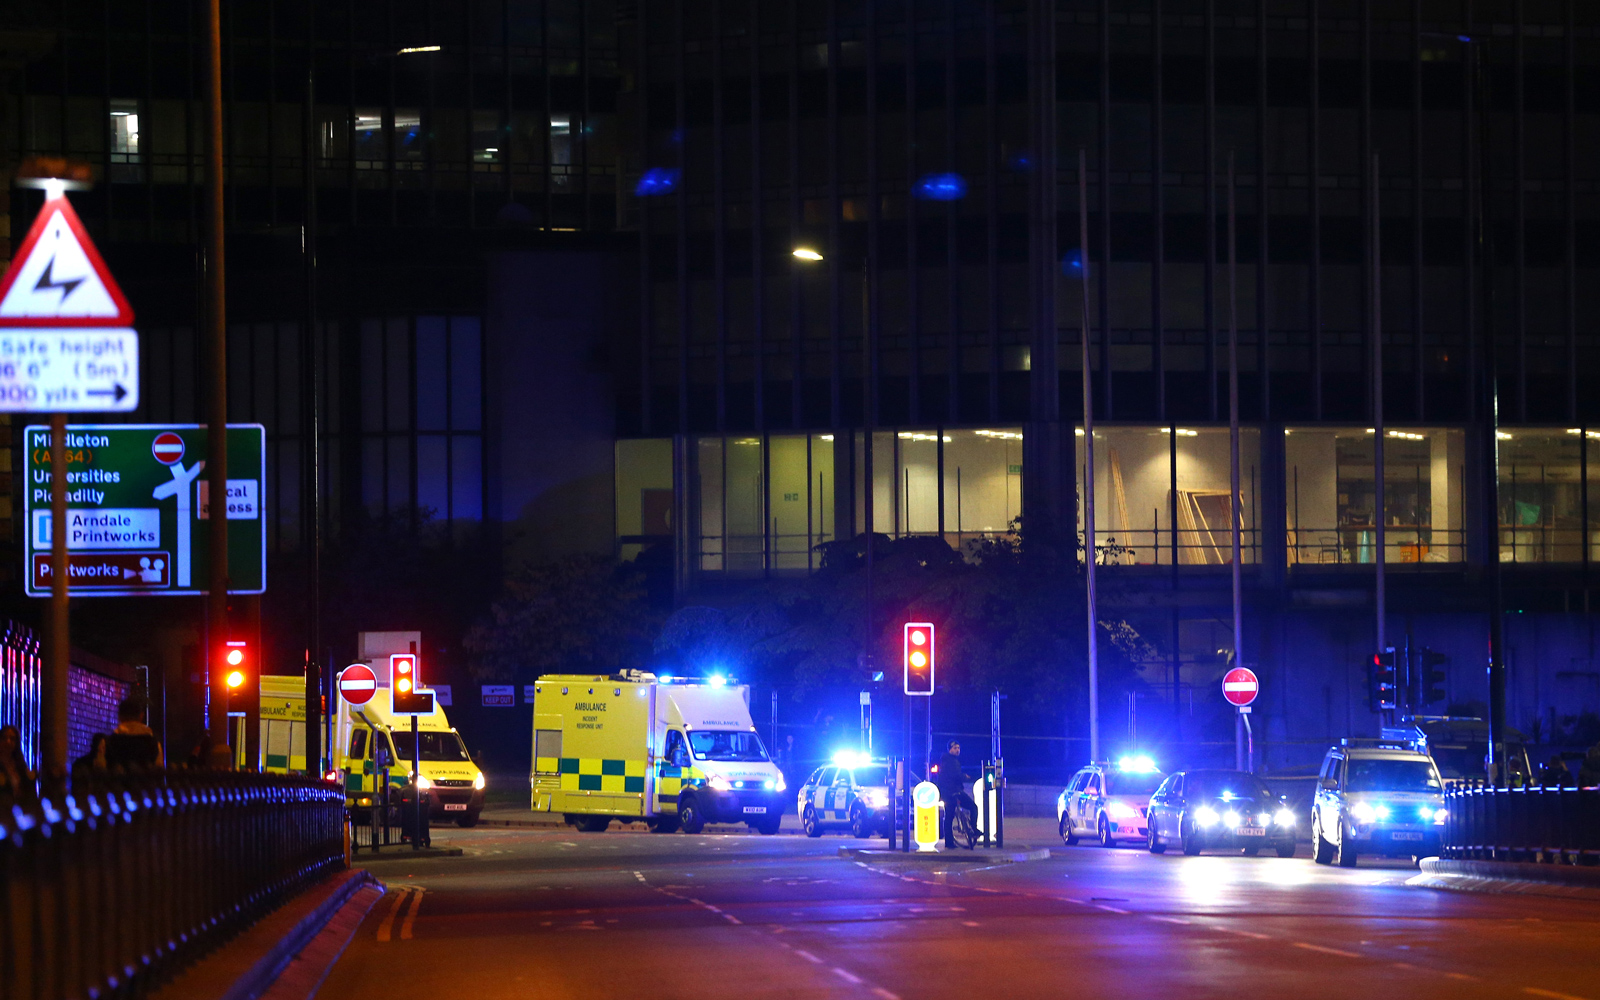 Multiple fatalities reported after explosion at Ariana Grande concert in Manchester